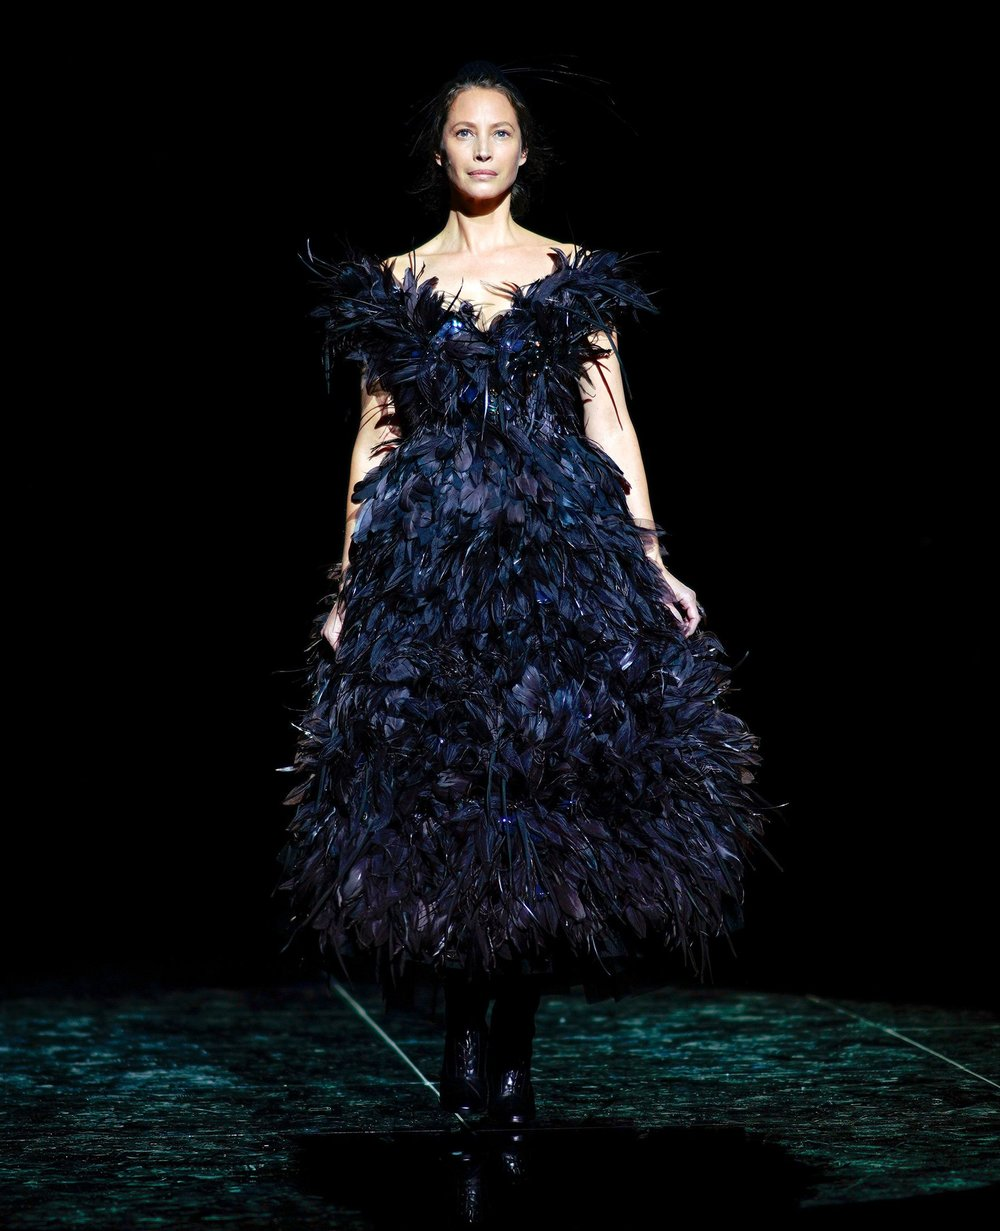 Christy Turlington Burns closes Marc Jacobs Fall 2019 runway show.